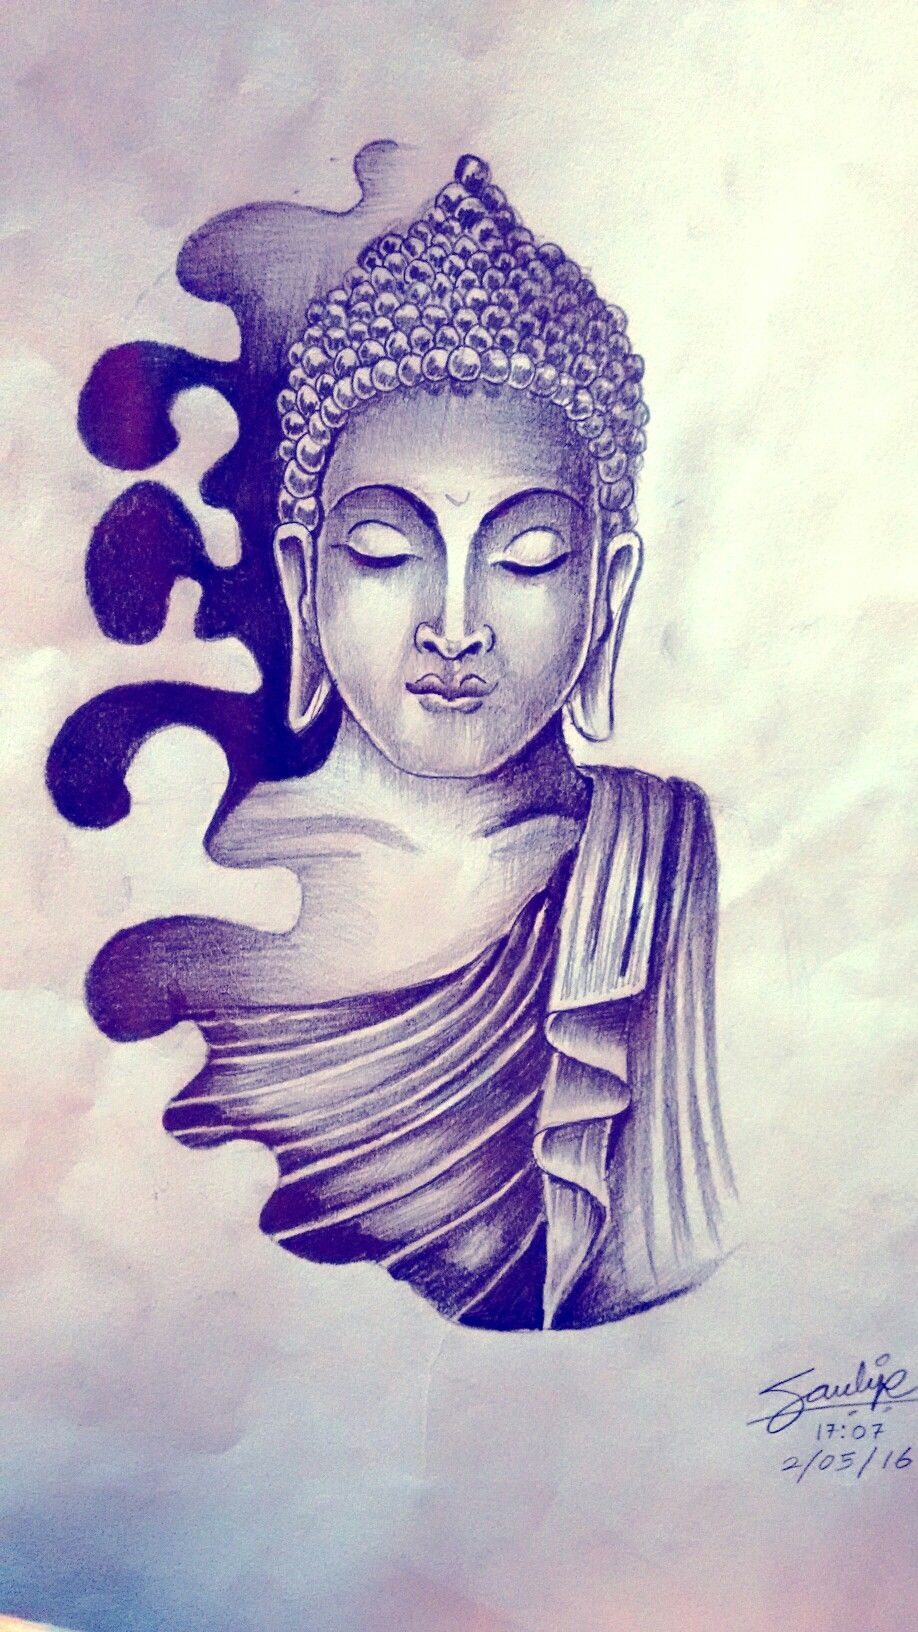 lord buddha tattoo drawing by artist sandip uttam at. Black Bedroom Furniture Sets. Home Design Ideas